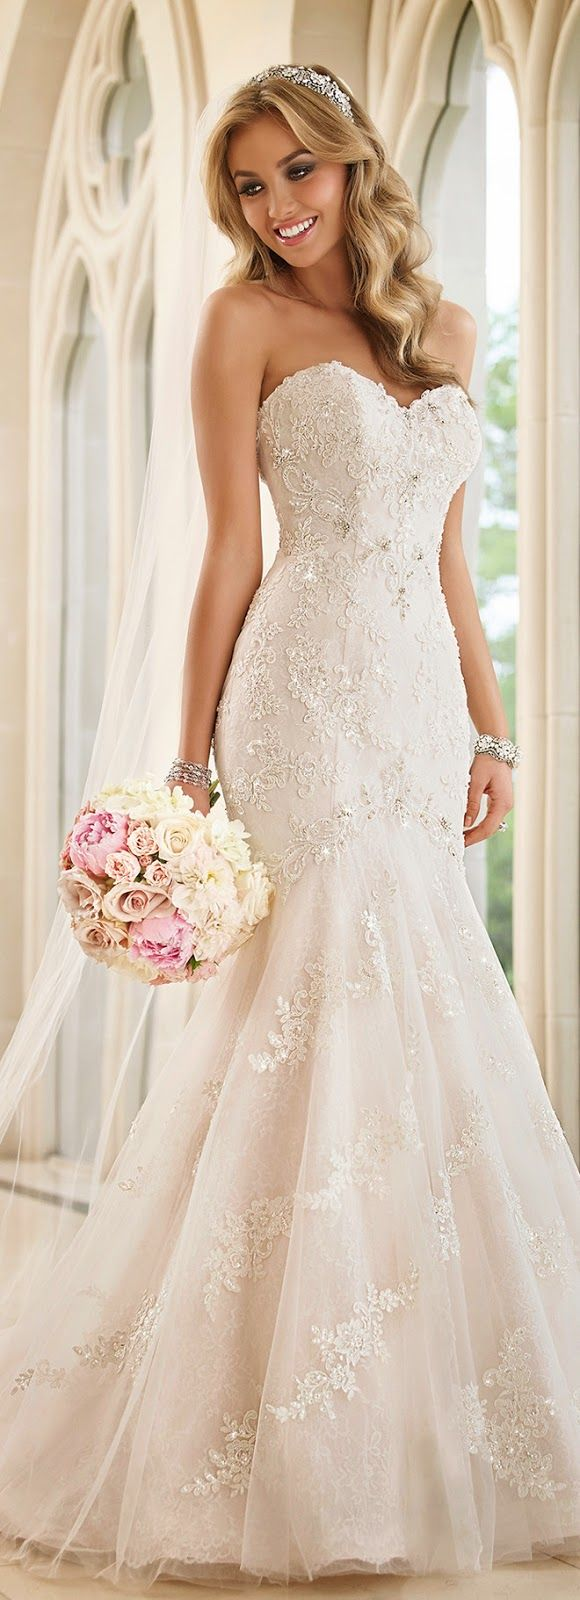 Stella York Fall 2015 Bridal Collection | Pinterest | Stella york ...